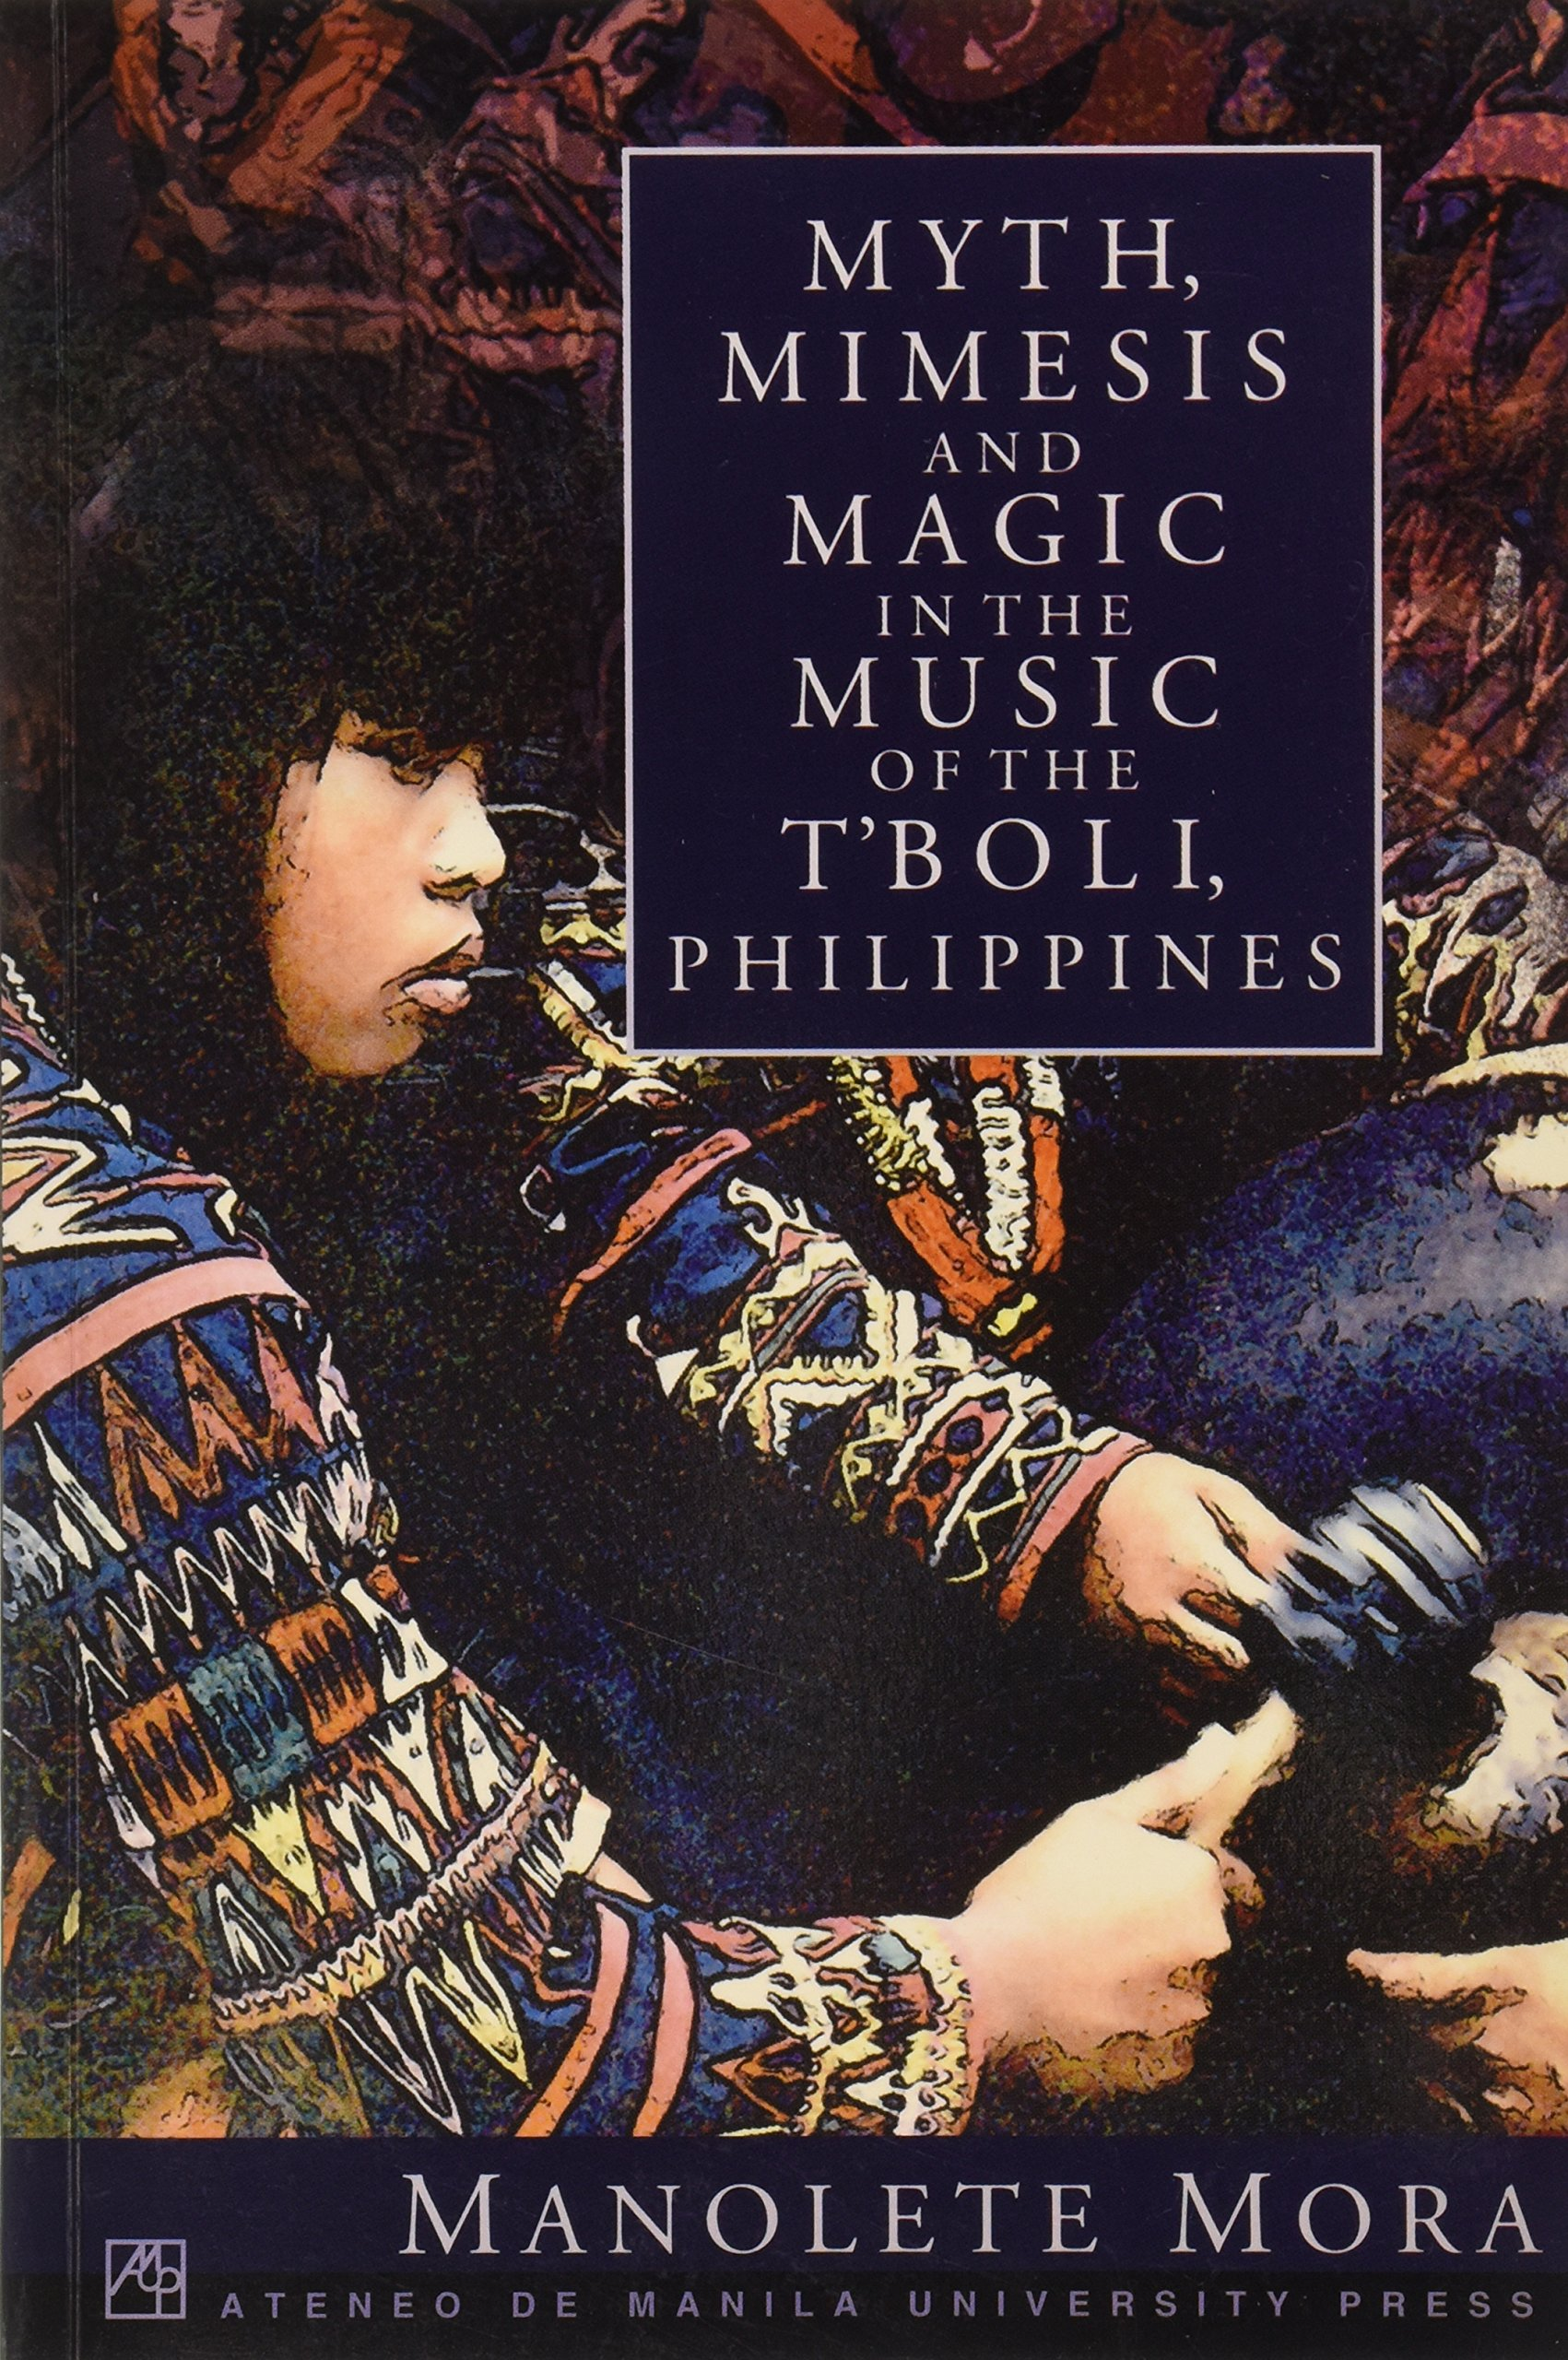 Download Myth, Mimesis and Magic in the Music of the T'boli, Philippines (Mindanao, Studies) ebook